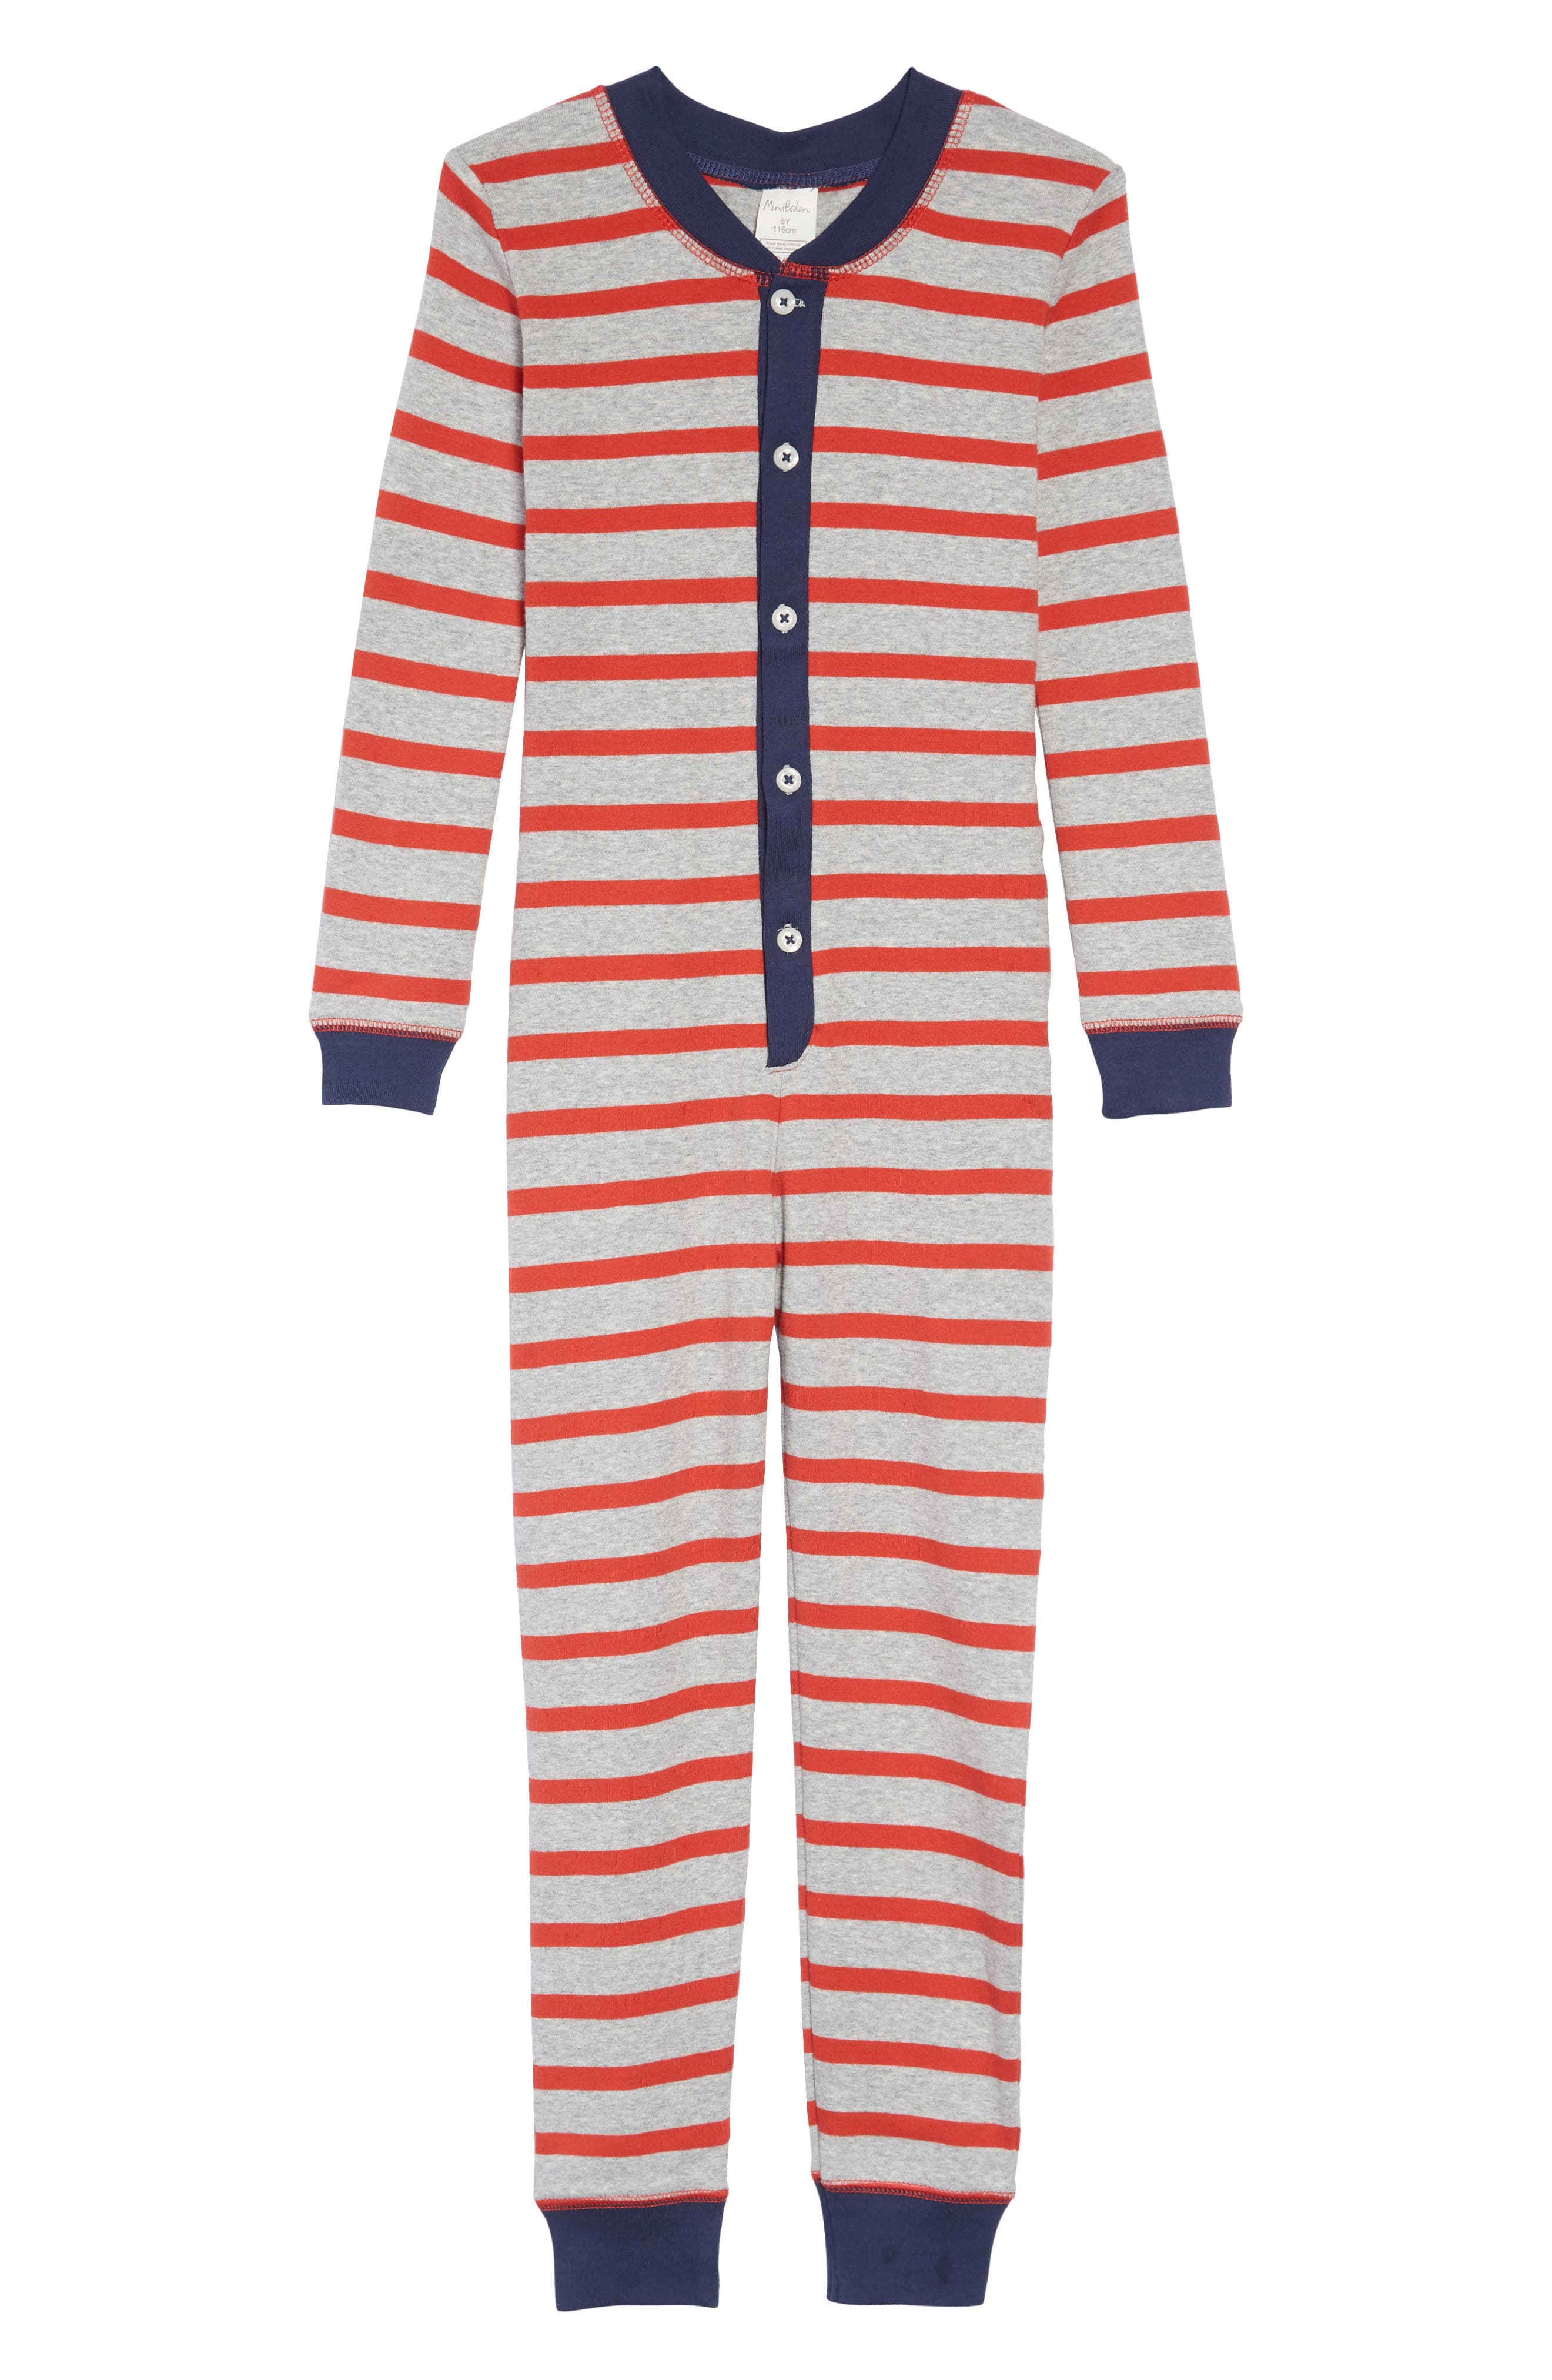 MINI BODEN Cosy Sleep Fitted One-Piece Pajamas, Main, color, 054